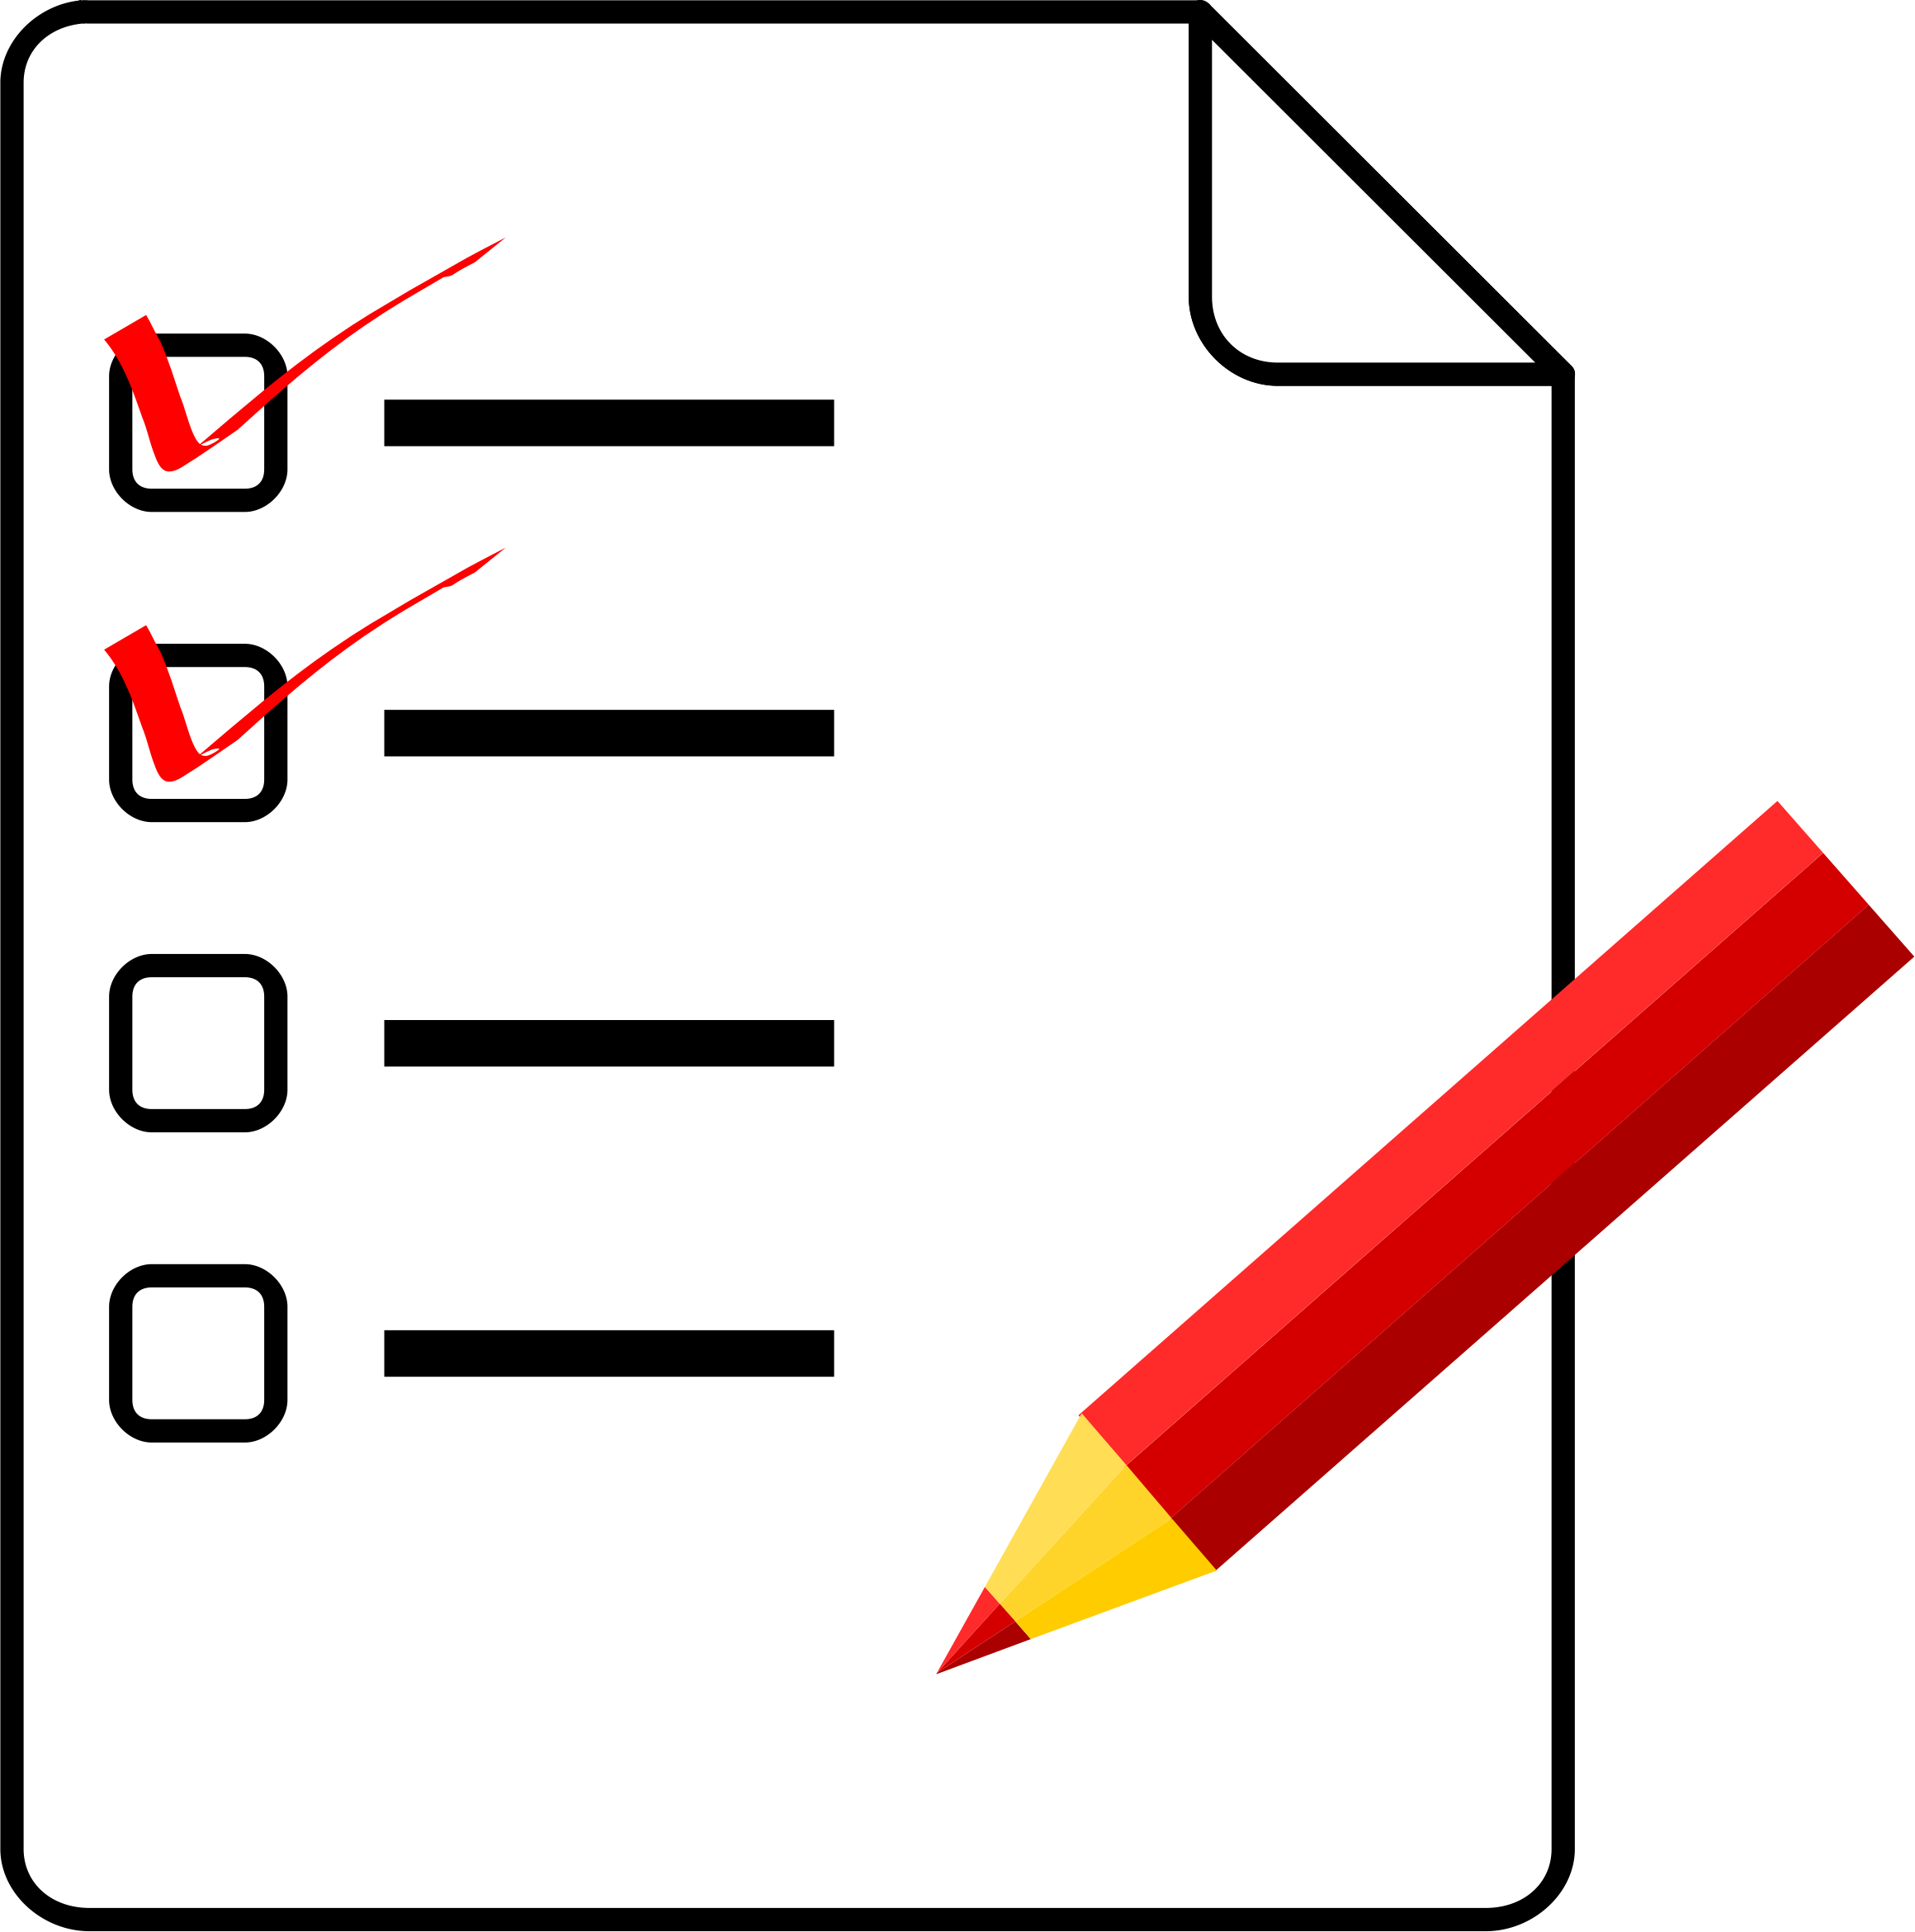 Checklist clipart thing.